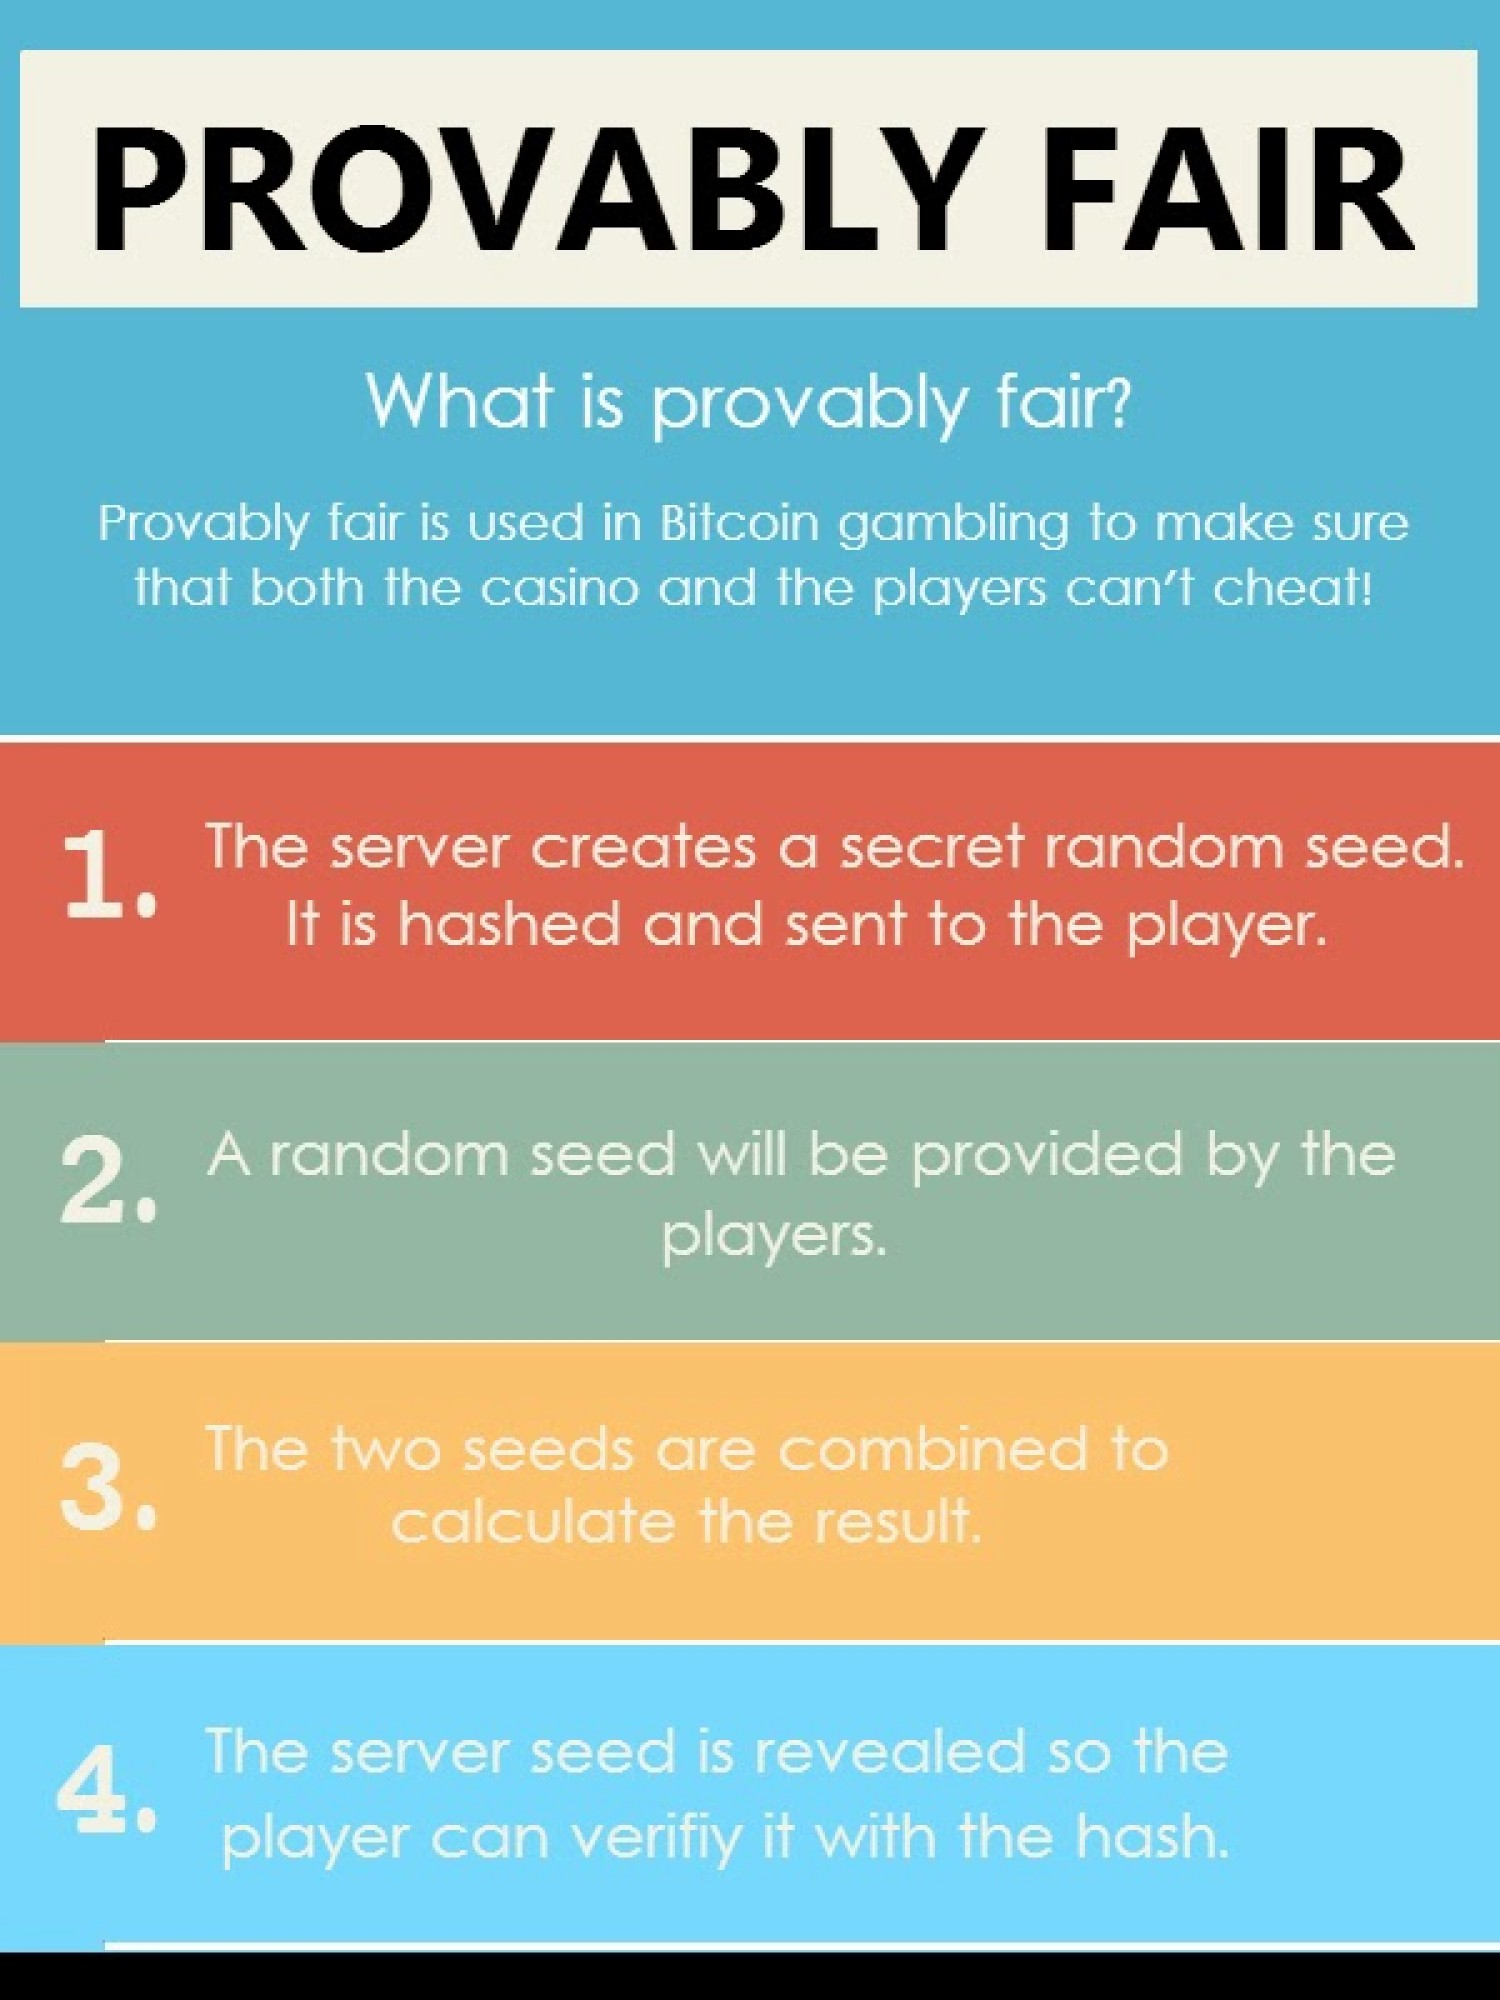 What is provably fair